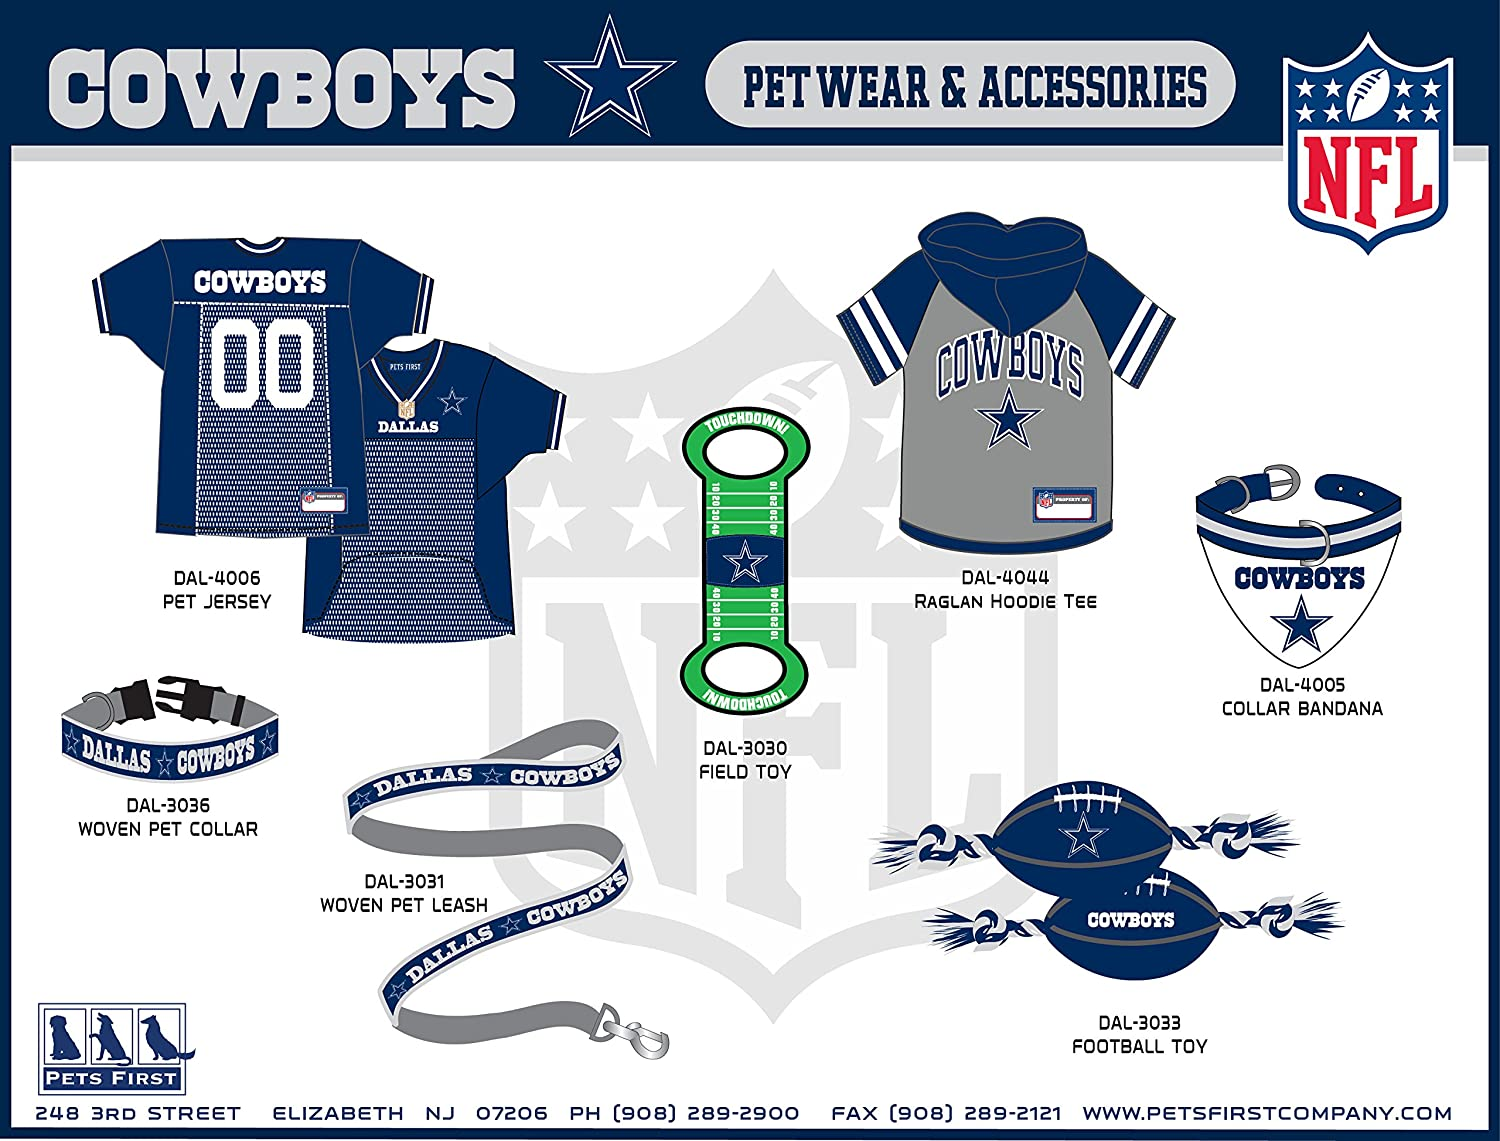 01c9d09151a Amazon.com : NFL Dog TAG - Dallas Cowboys Smart Pet Tracking Tag. - Best  Retrieval System for Dogs, Cats or Army Tag. Any Object You'd Like to  Protect : Pet ...